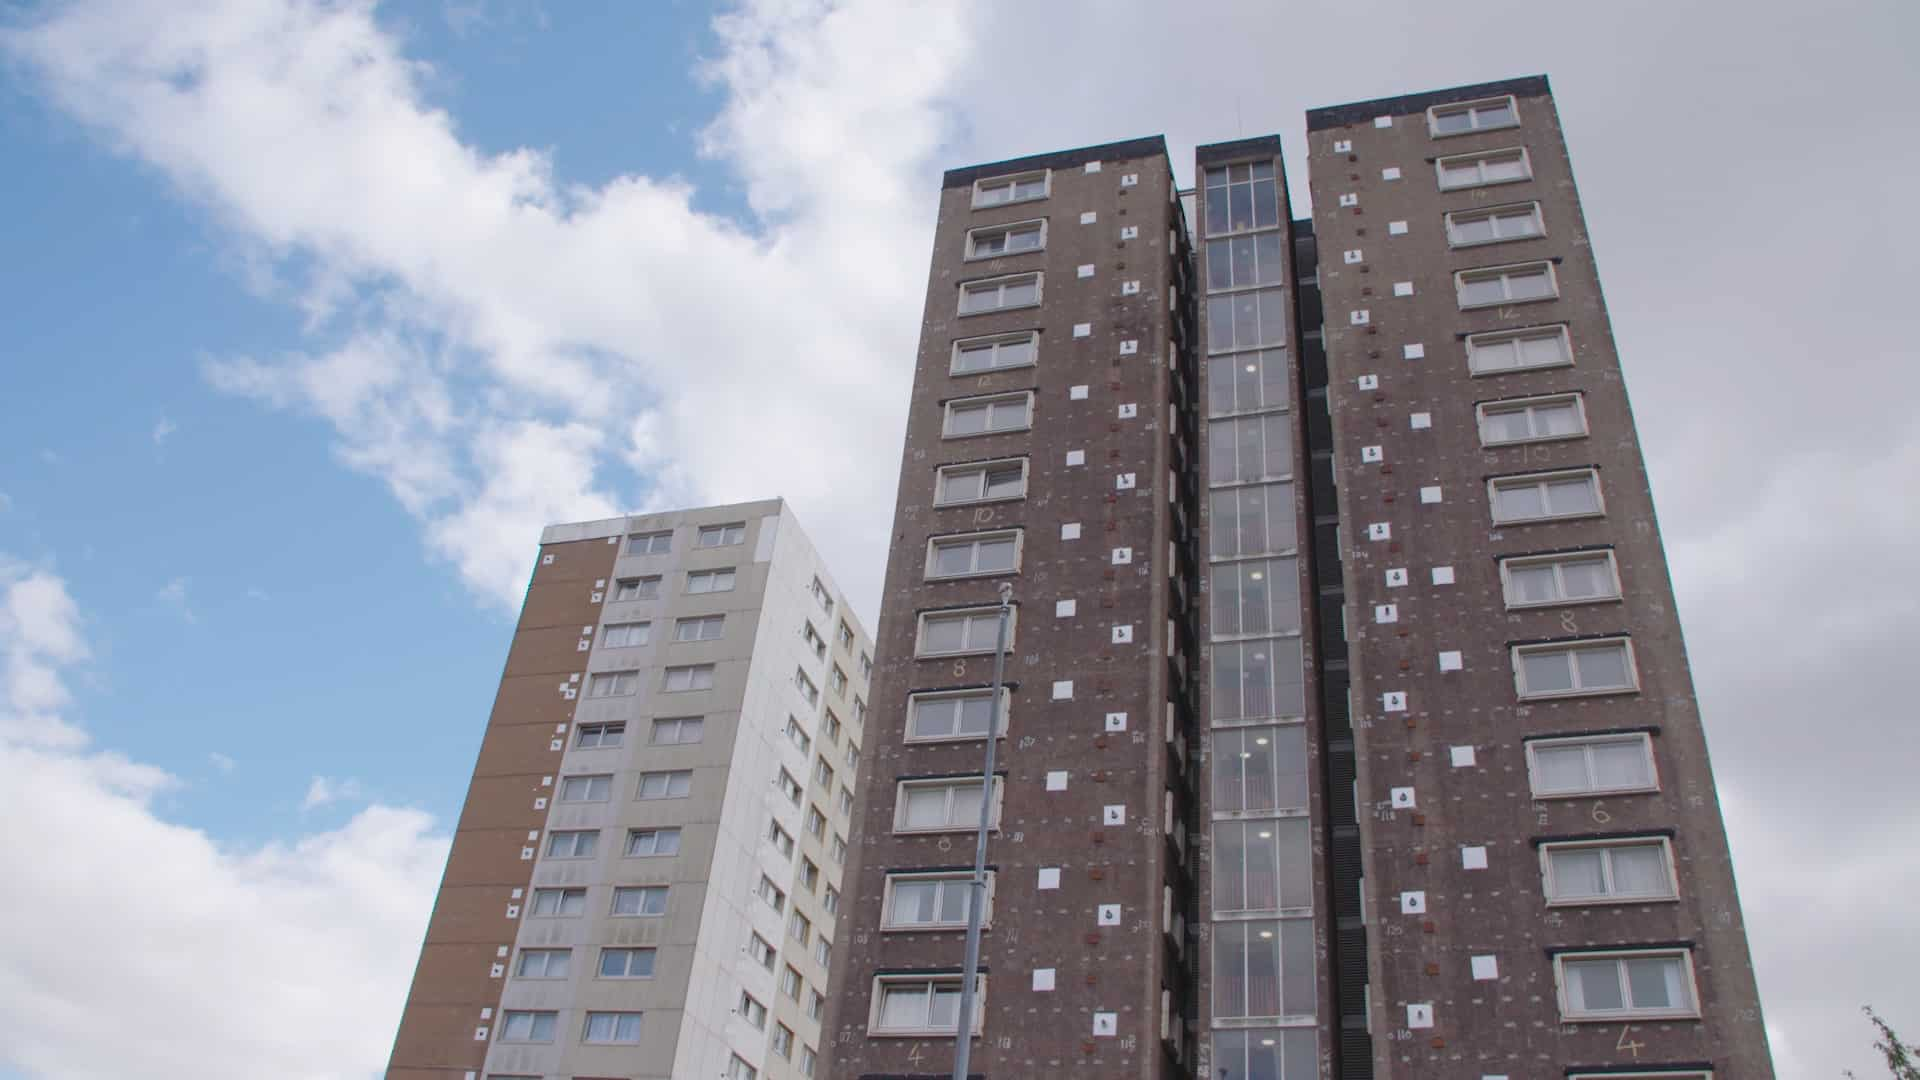 high rise building in Butetown, Cardiff